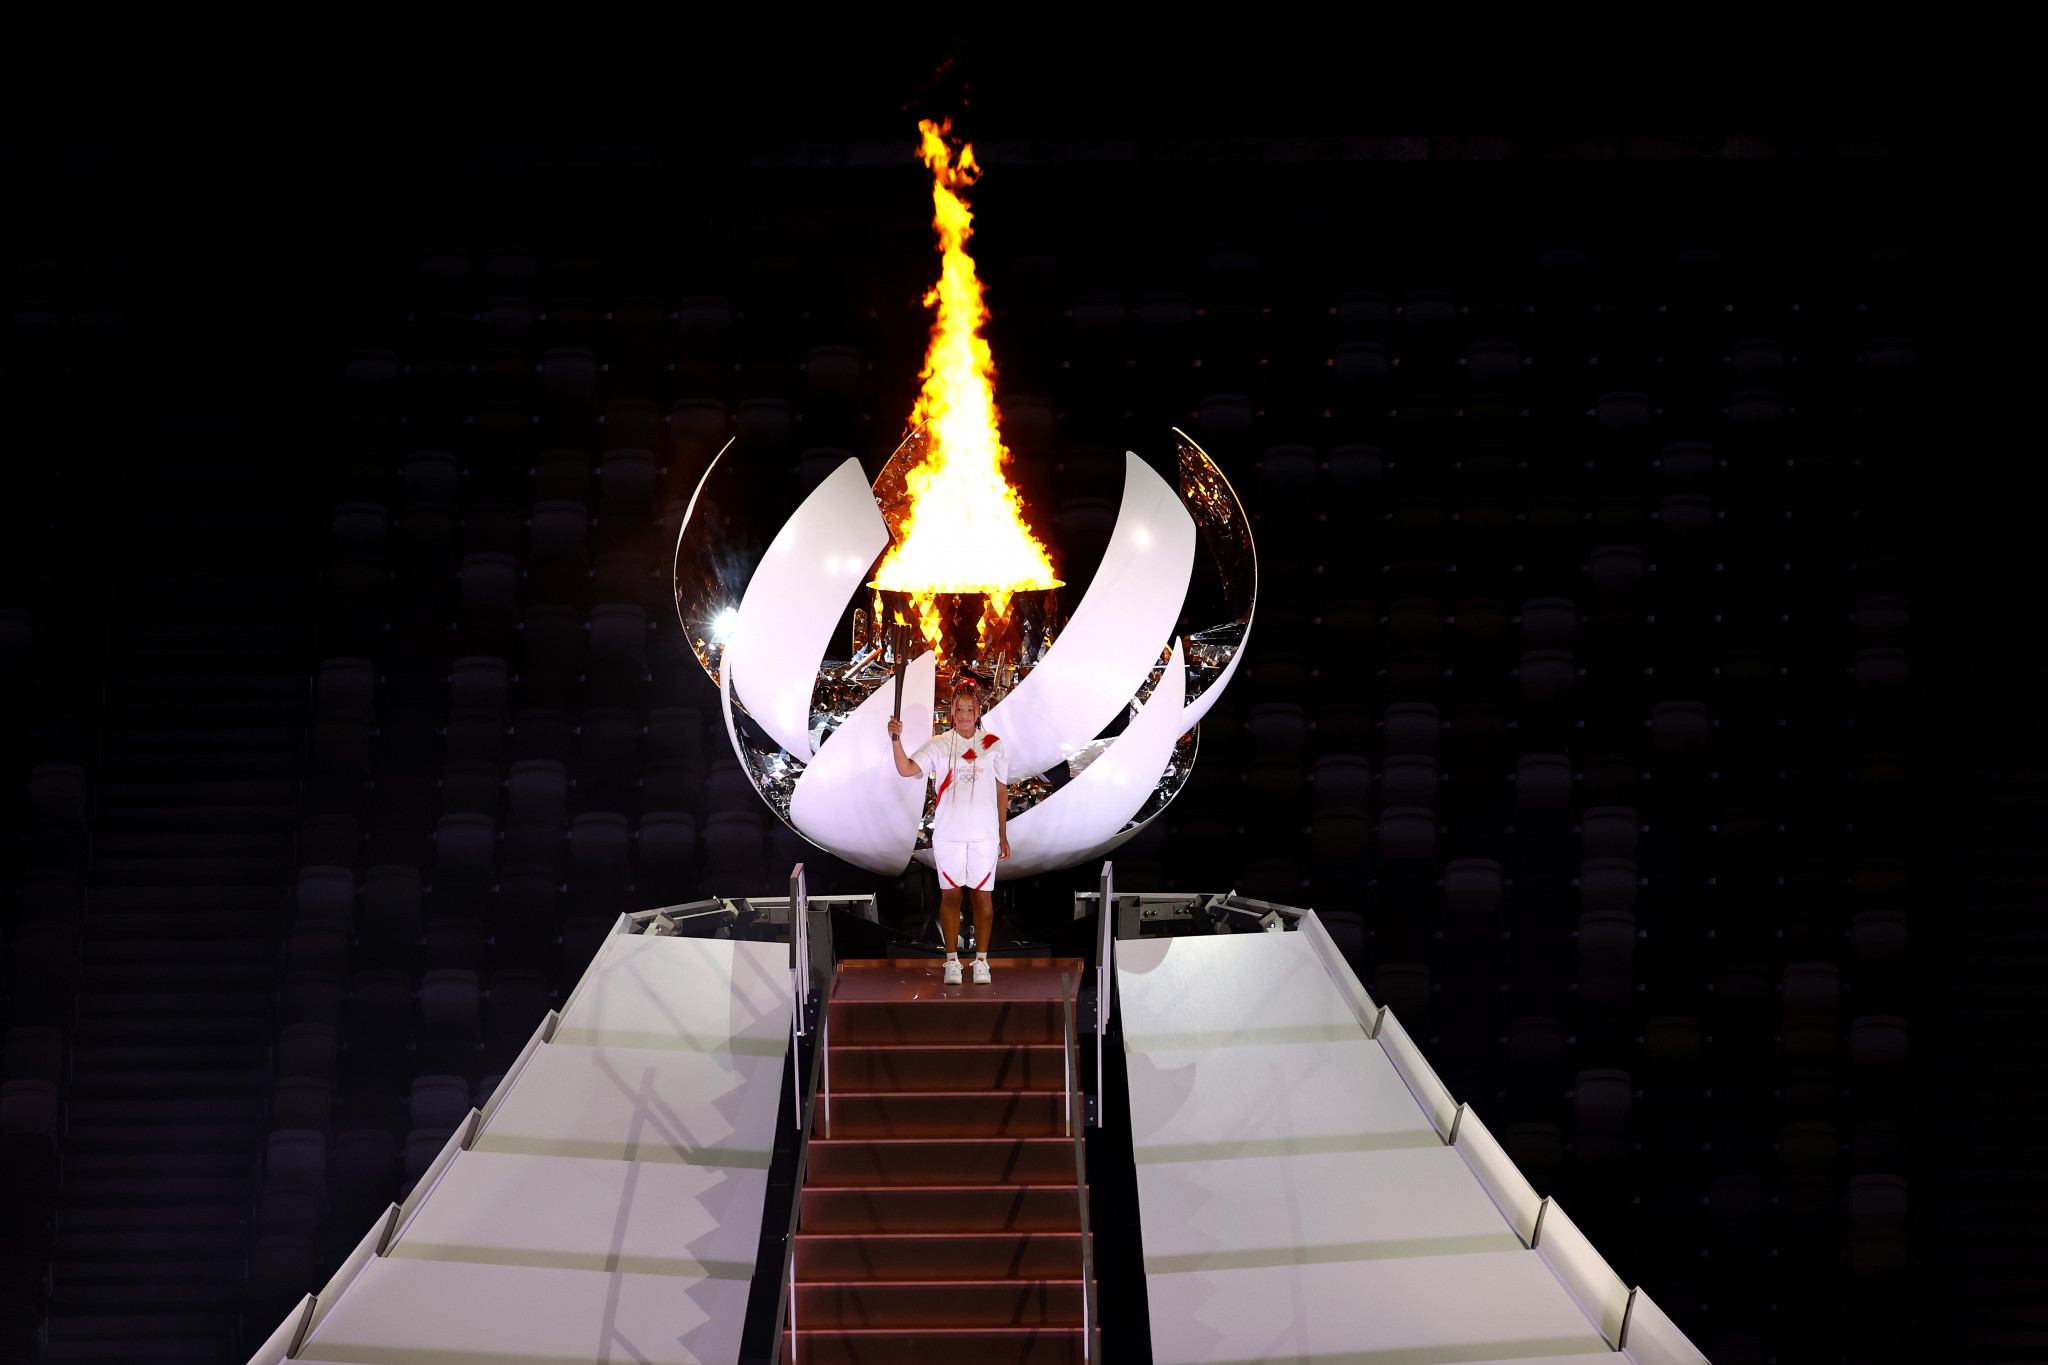 Naomi Osaka was an obvious choice to light the Tokyo 2020 Olympic Cauldron ©Getty Images